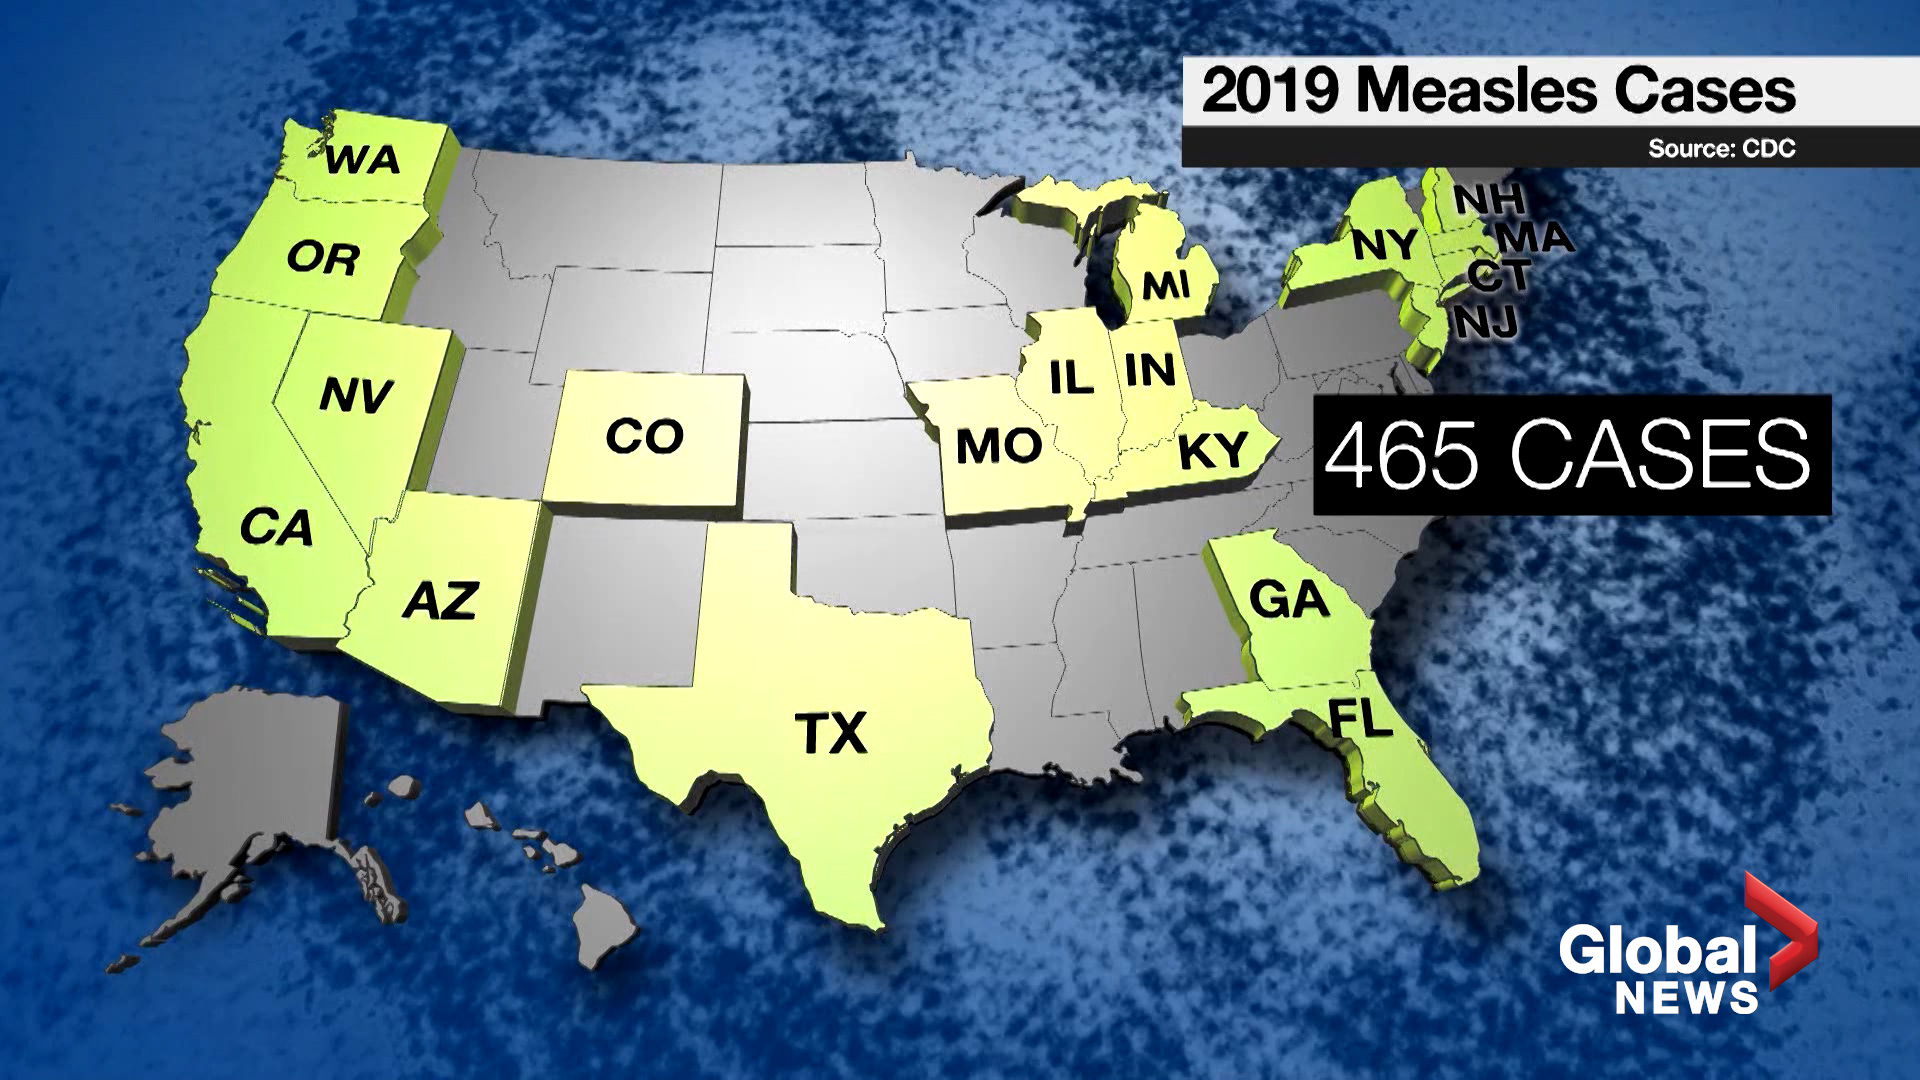 Measles cases rose nearly four-fold in first quarter 2019